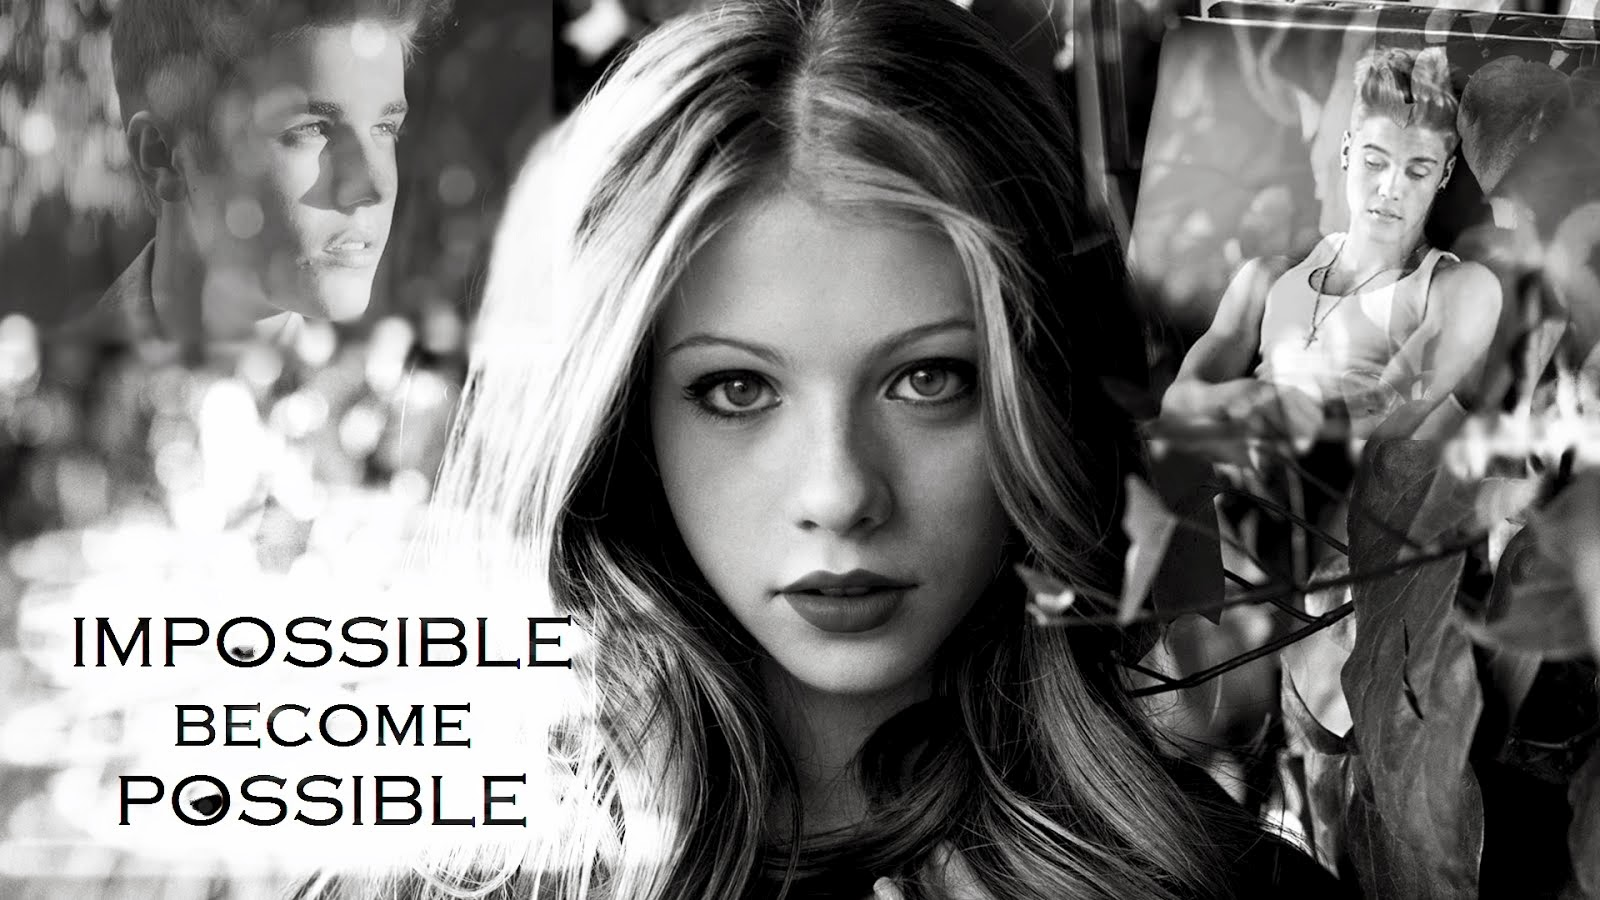 IMPOSSIBLE become POSSIBLE